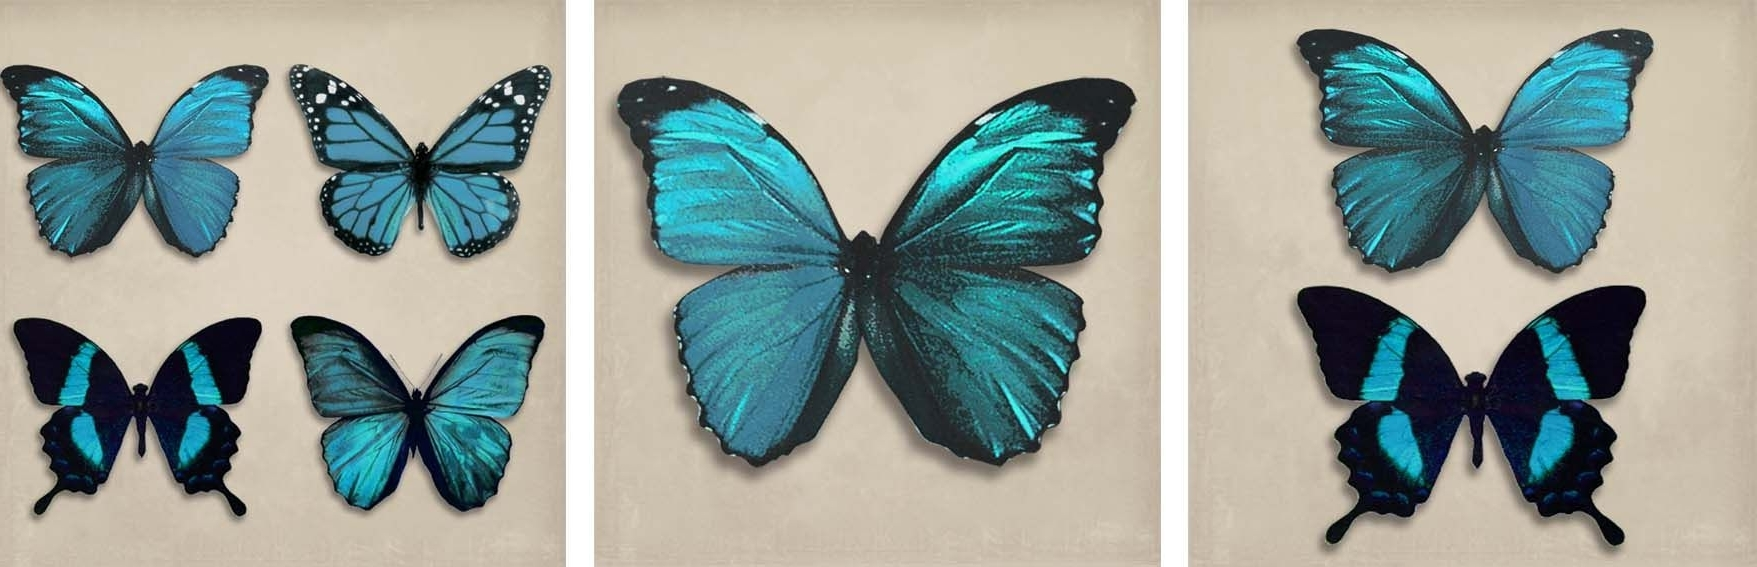 Butterflies Canvas Wall Art Within Current Teal Butterflies Set Of 3 Canvasesarthouse : Wallpaper Direct (View 5 of 15)